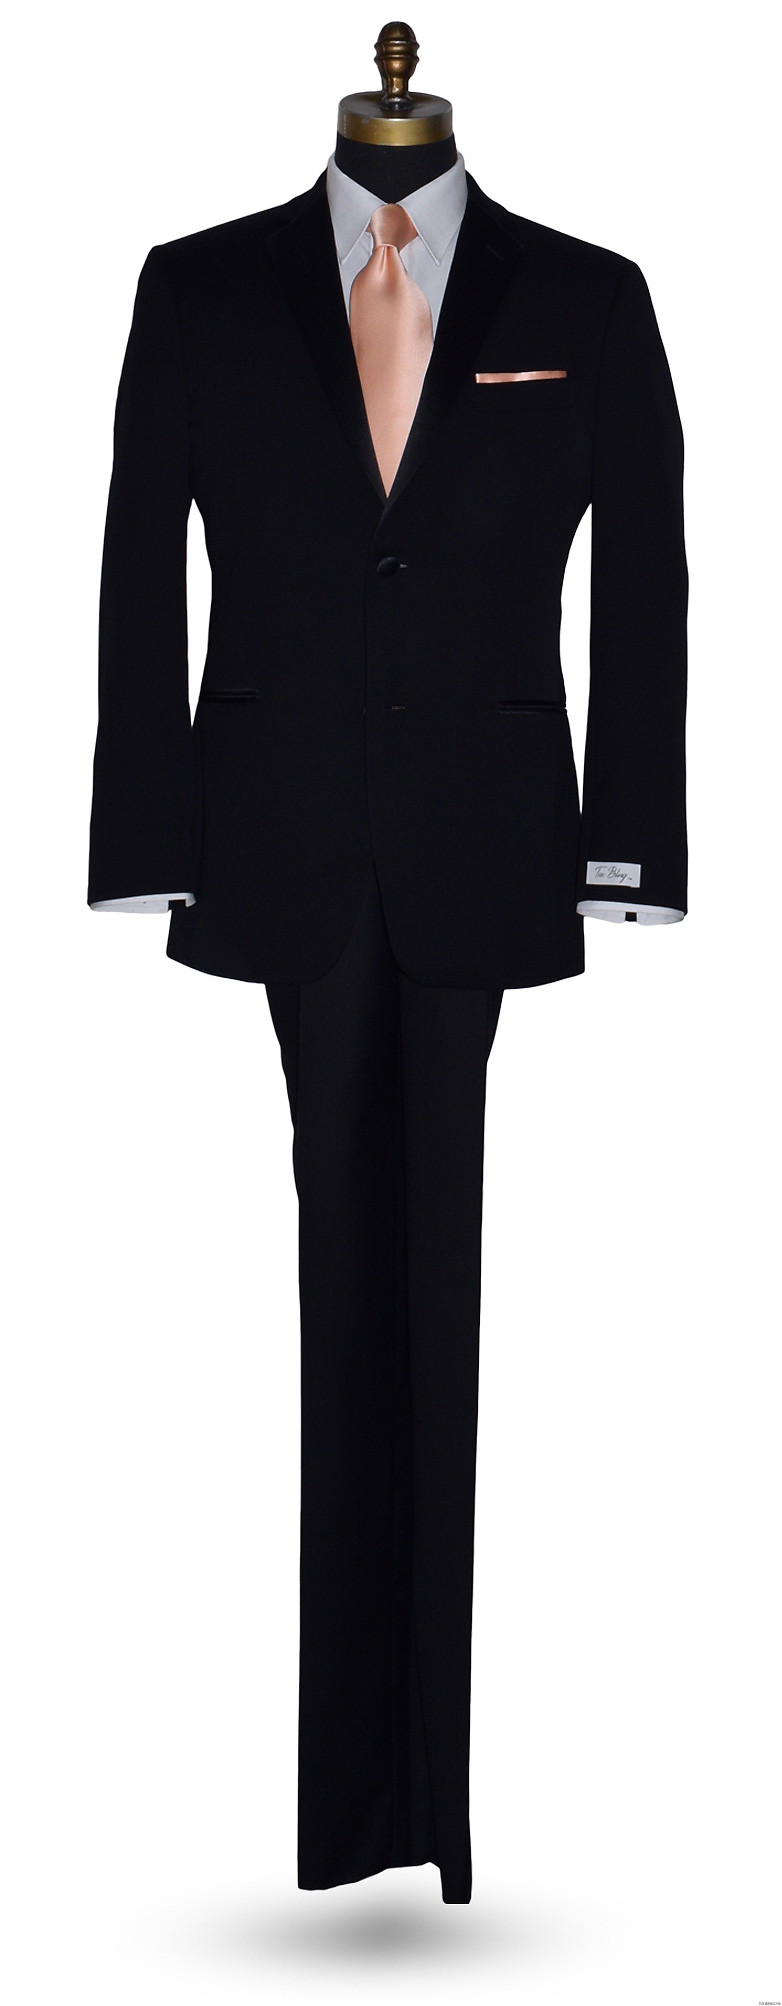 black tuxedo at Tuxbling.com with long peach men's dress tie